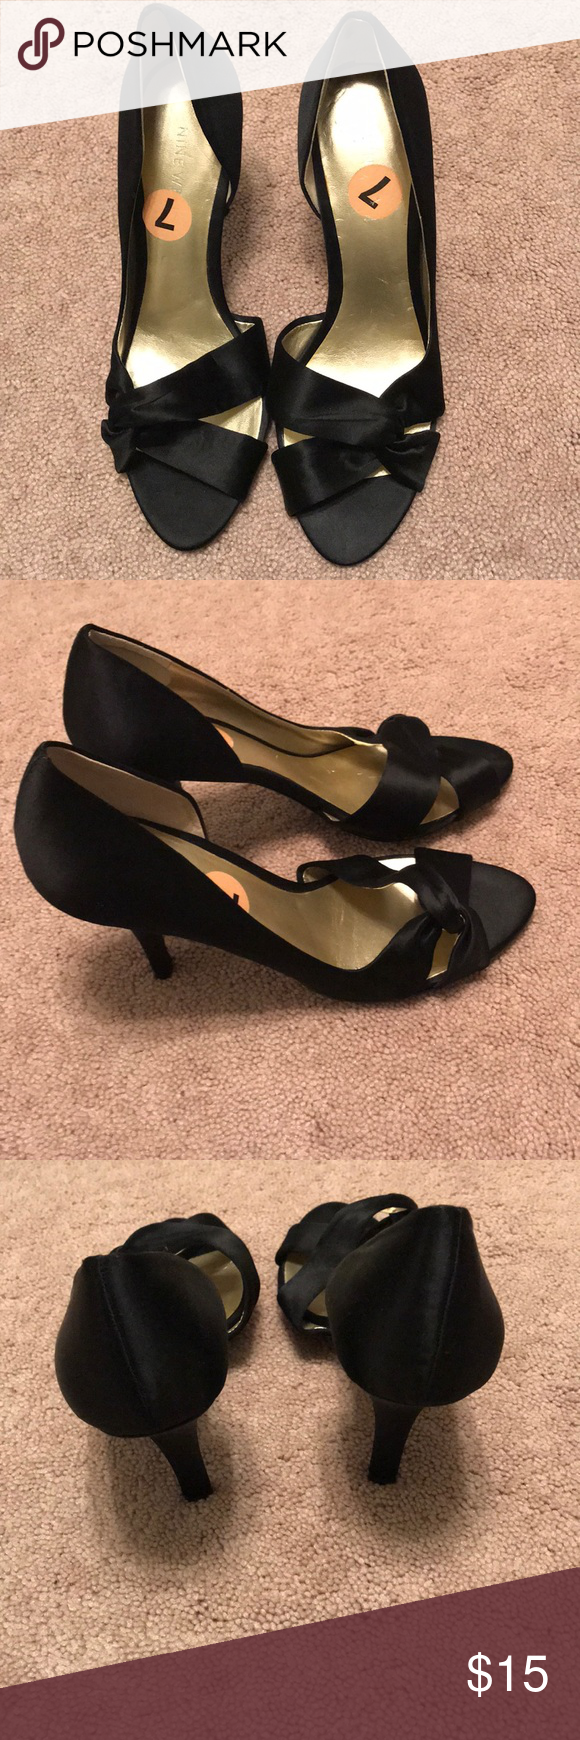 Satin dress shoes Never worn satin dress shoes - run narrow! Perfect for any formal event. Nine West Shoes Heels